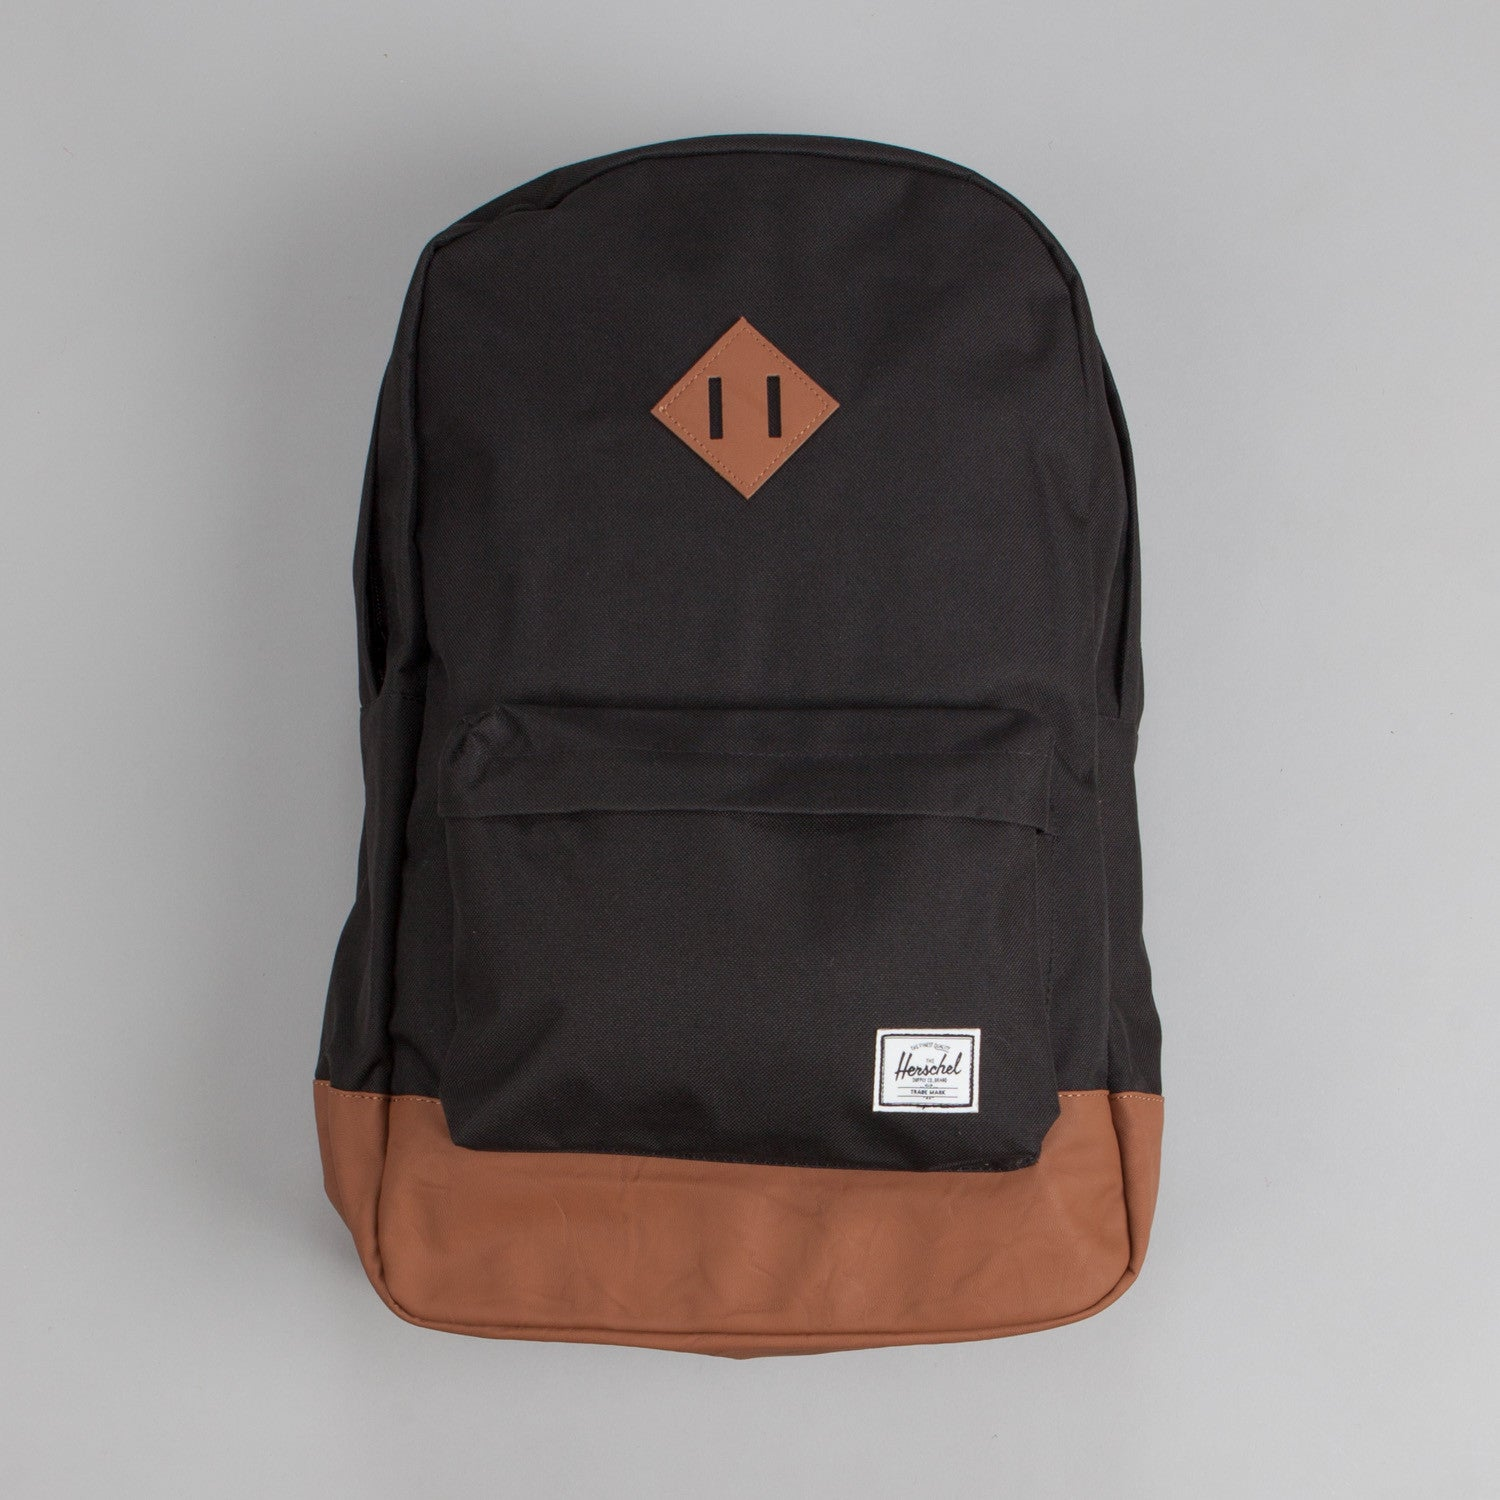 Herschel Heritage Backpack Black